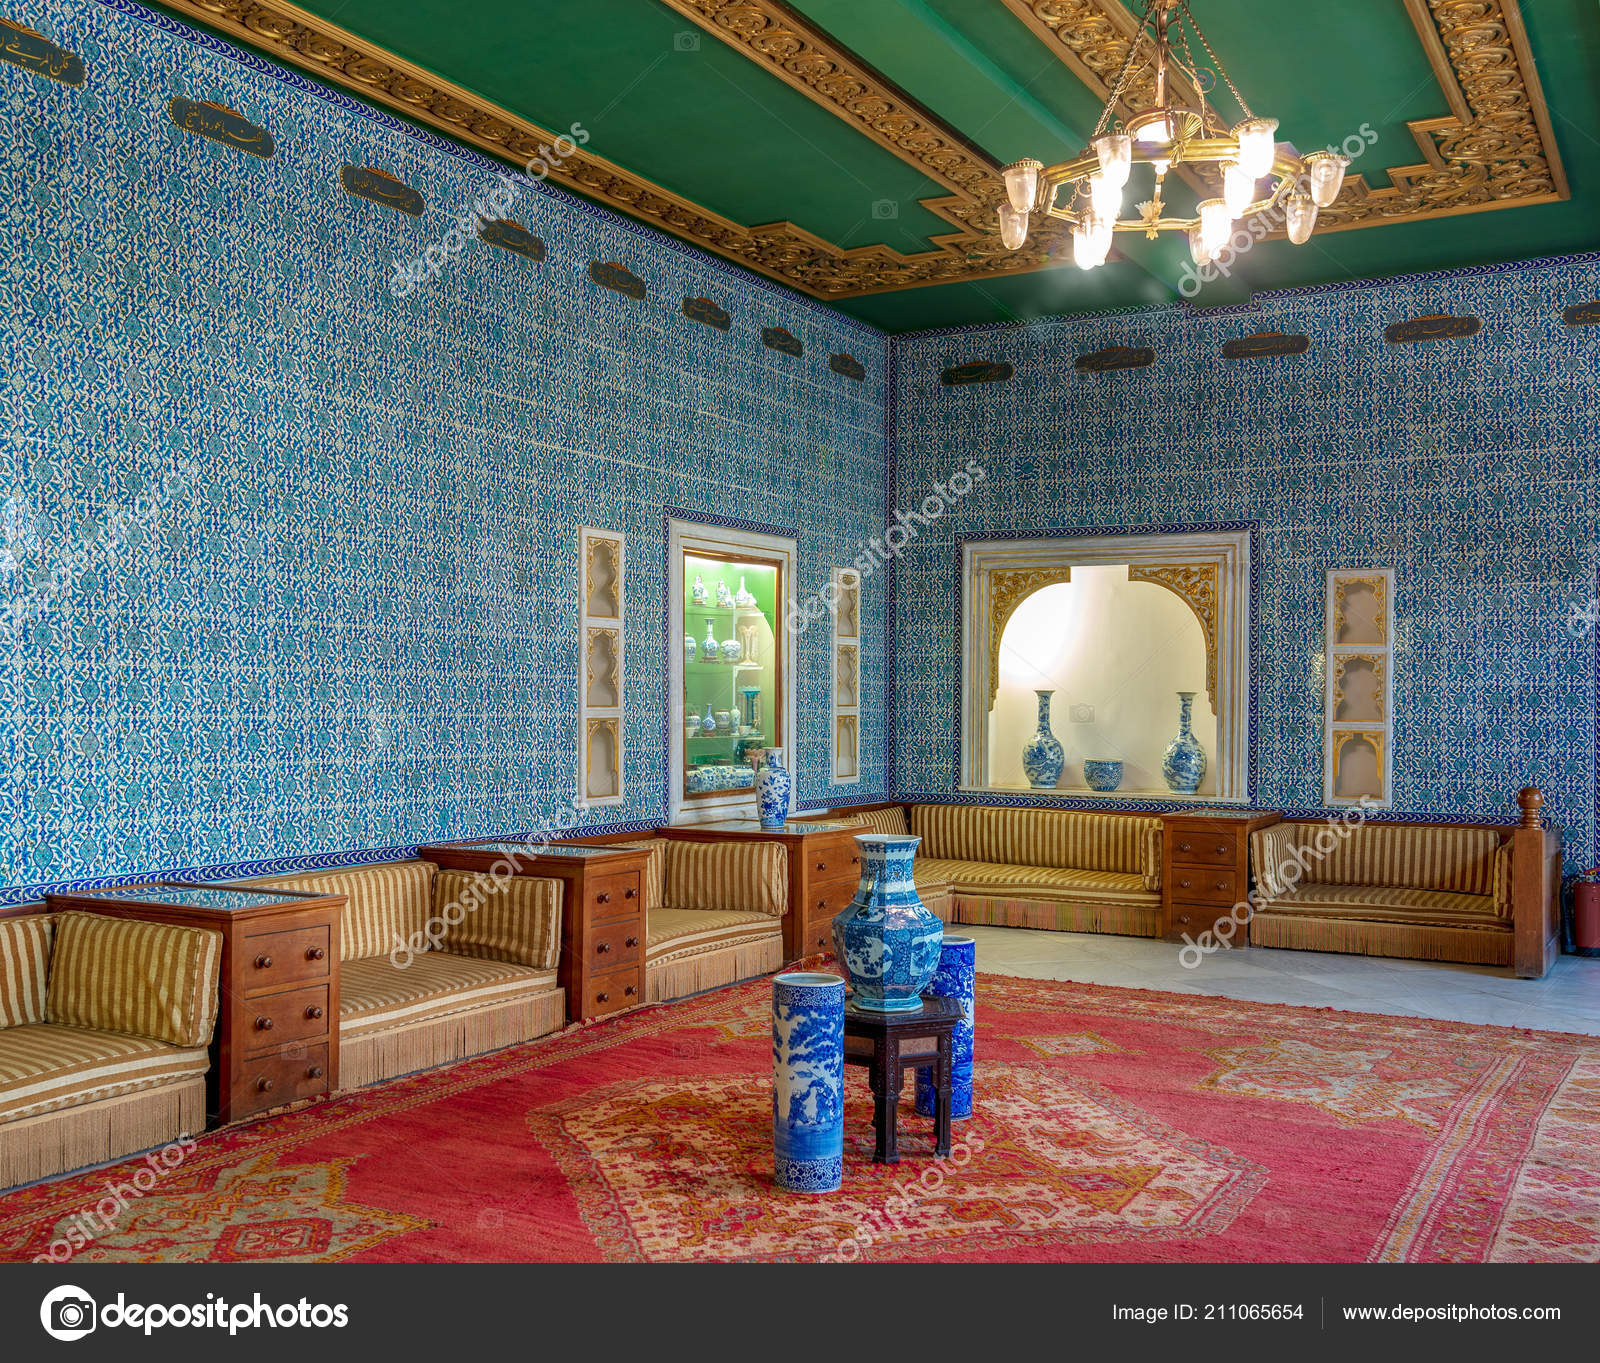 Cairo Egypt August 2018 Manial Palace Prince Mohammed Ali Blue